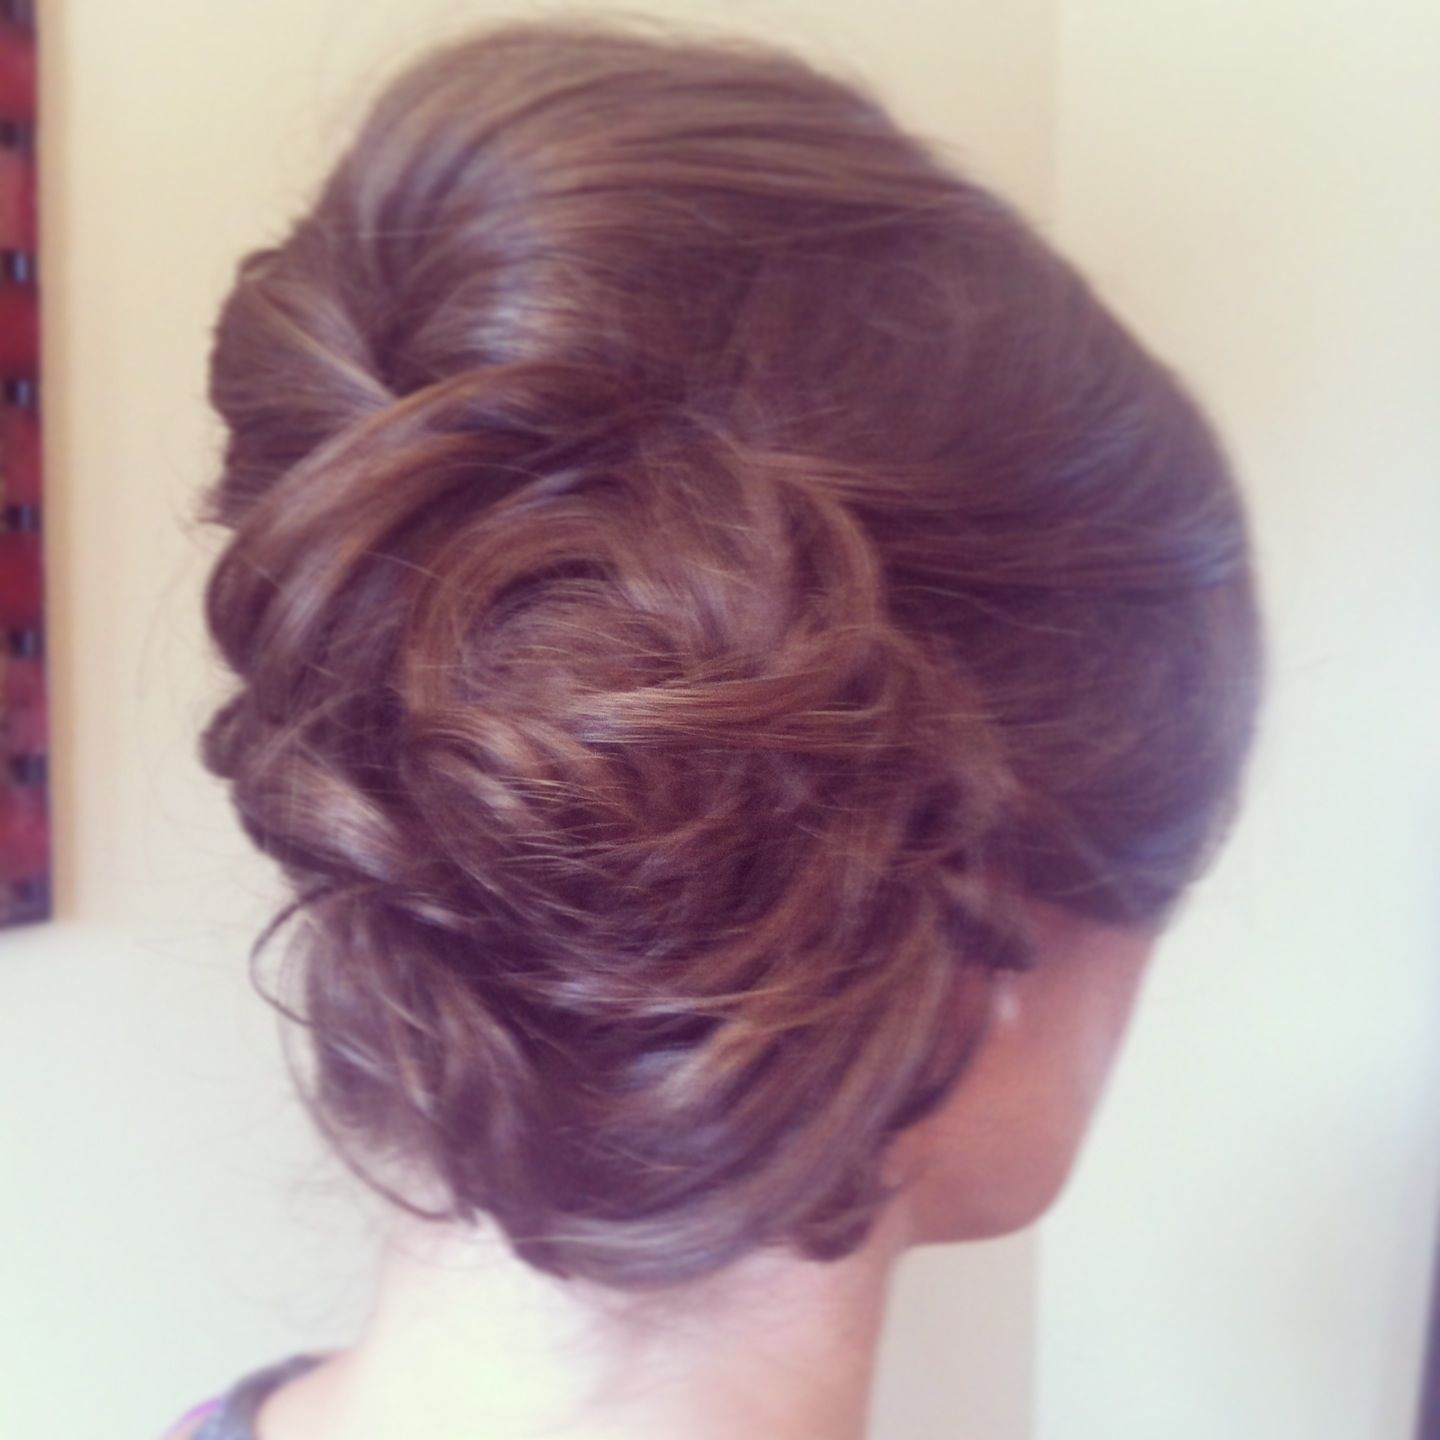 Icagostylelust low side bun with loose curls pinned up